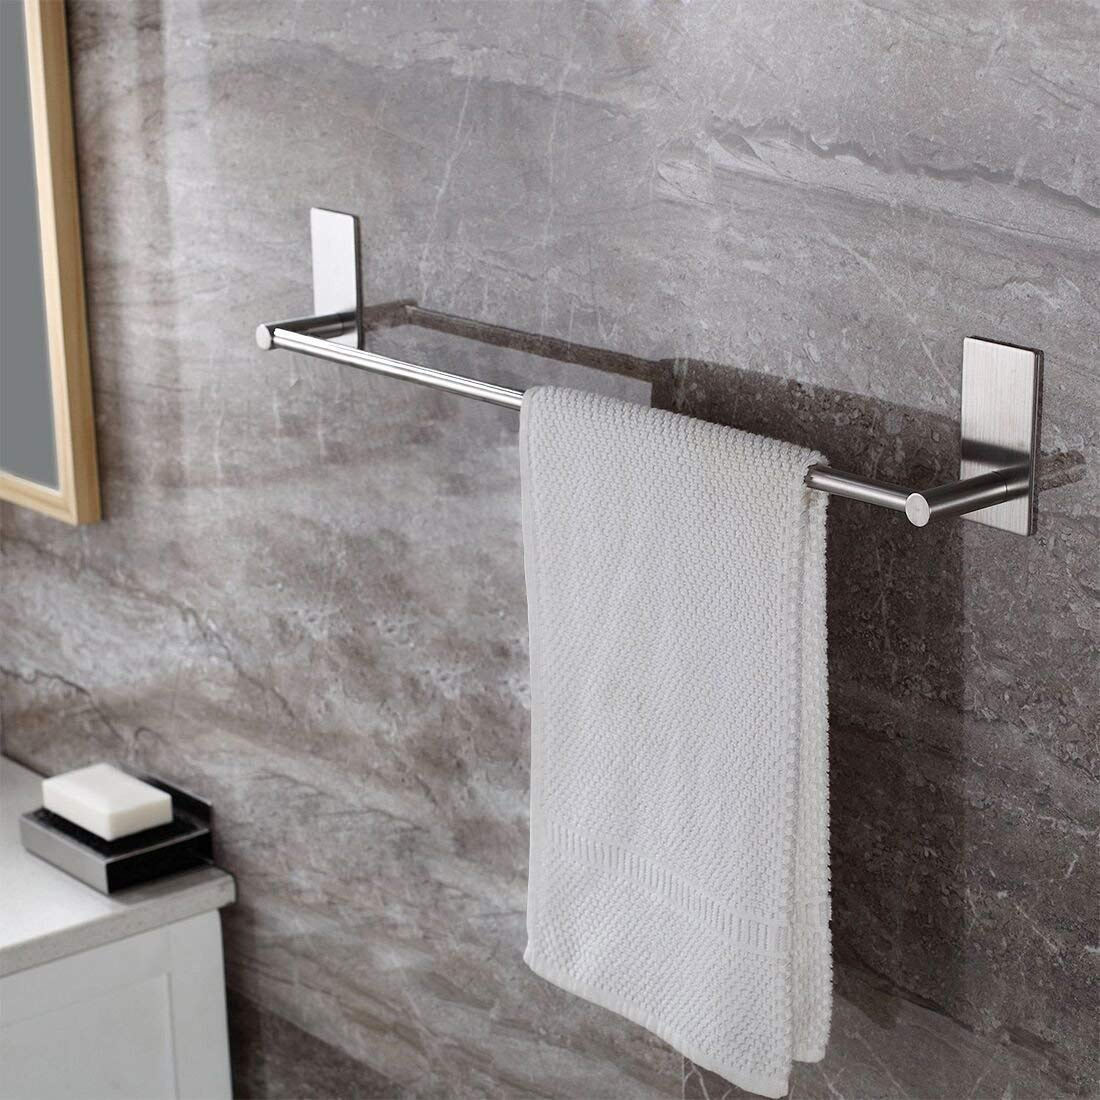 Taozun Towel Bar Self Adhesive 21.65-Inch Bathroom Brushed SUS 304 Stainless Steel Bath Wall Shelf Rack Hanging Towel Stick On Sticky Hanger Contemporary Style by Taozun